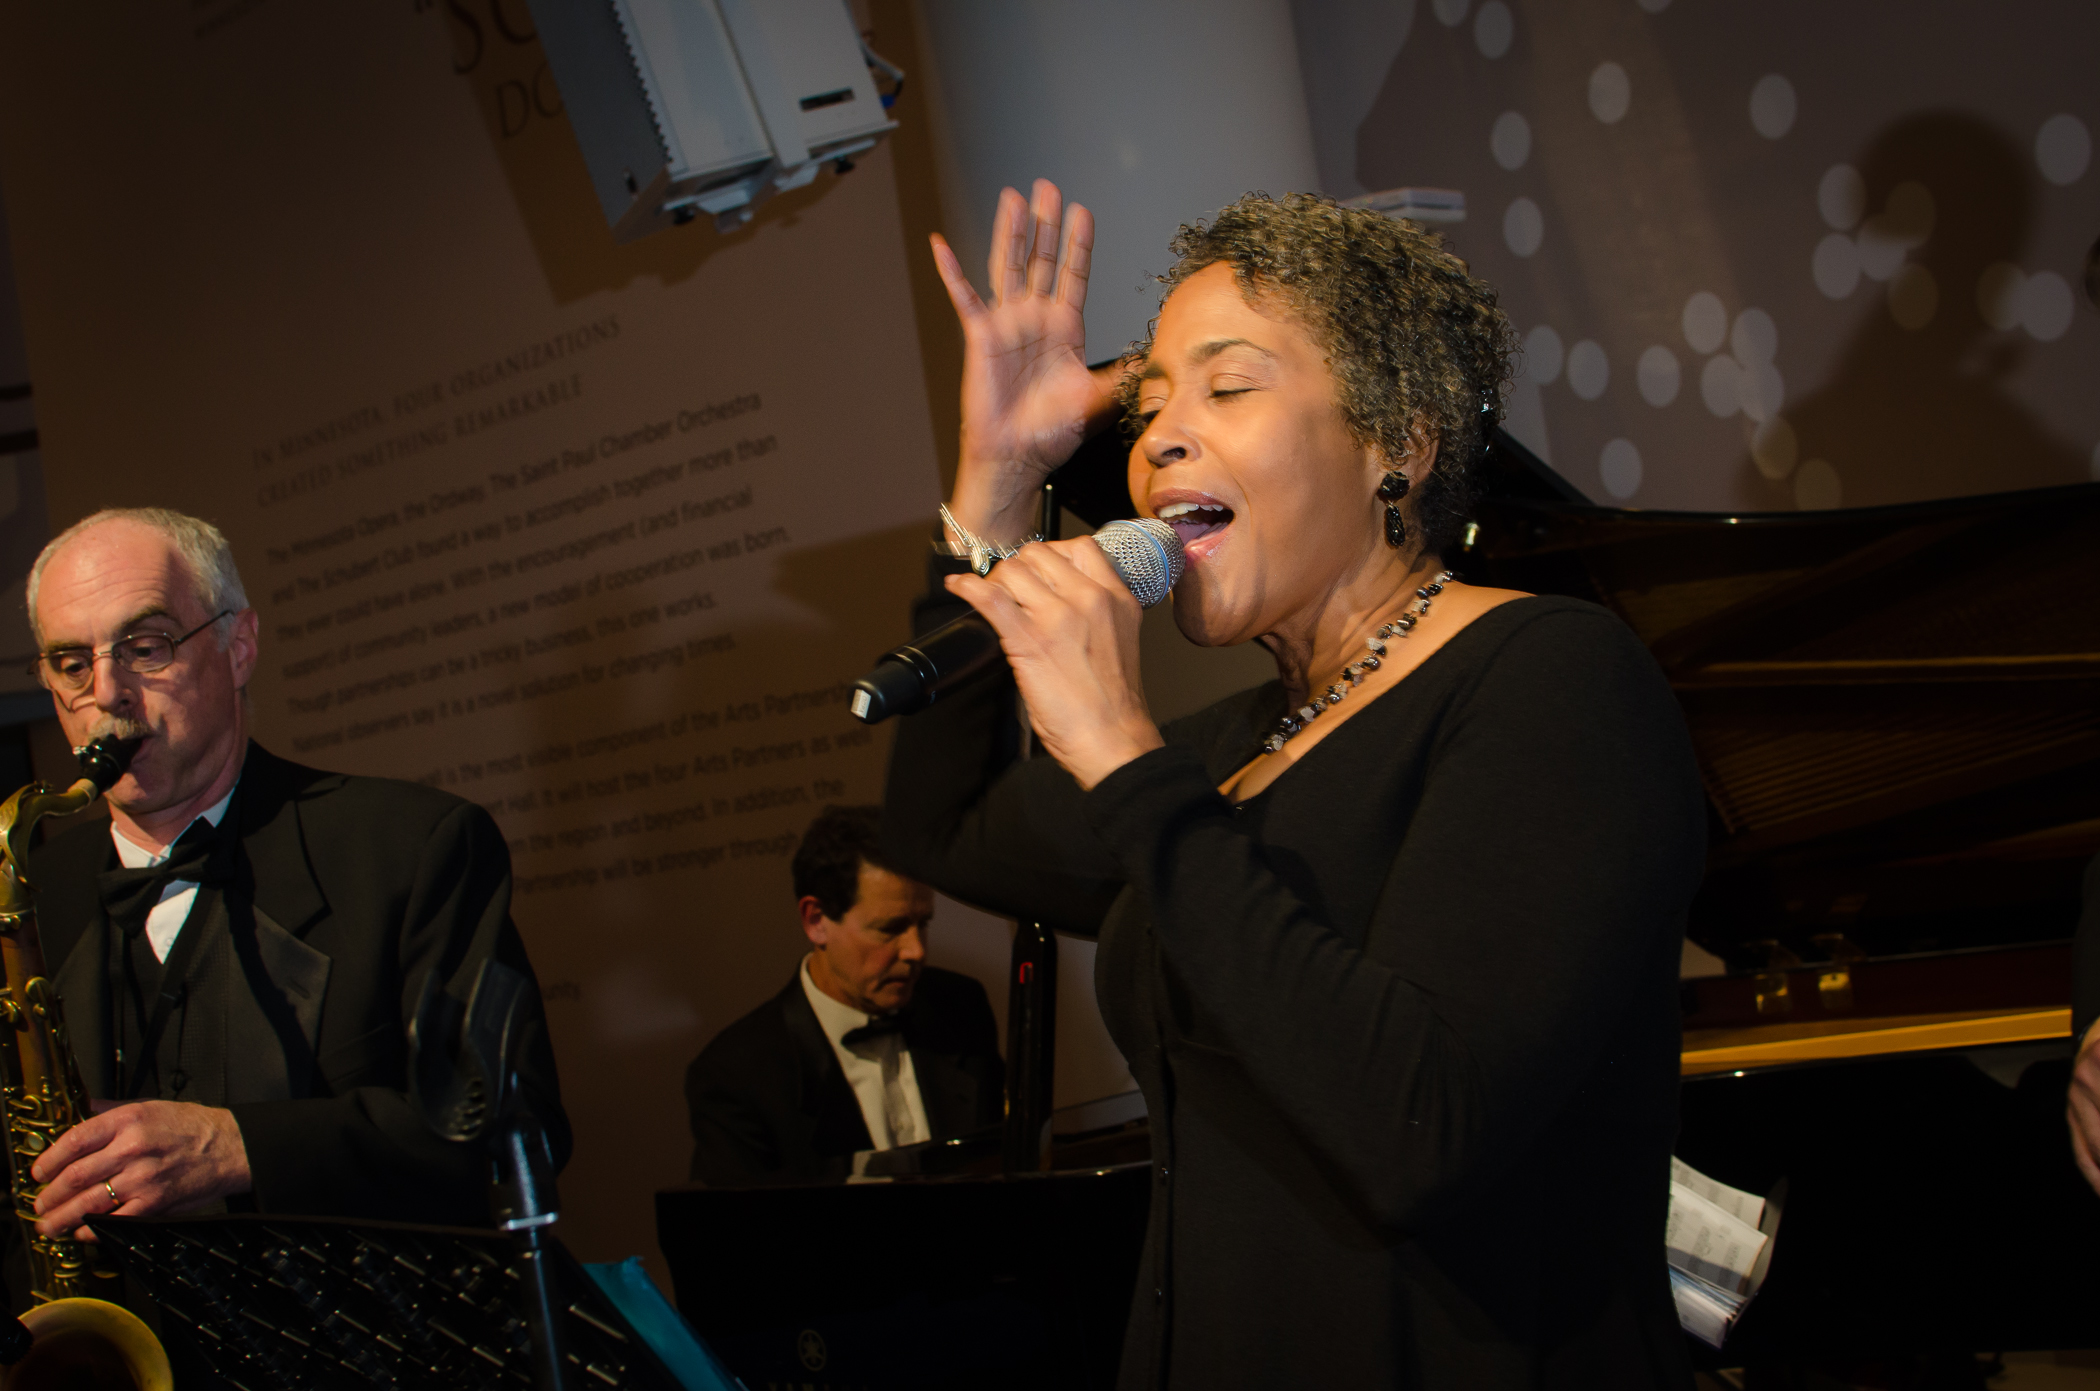 Best Twin Cities' Live Jazz Band - tips the Scales of Jazz - intimate improvisation from a bygone era, Court's In Session is Great Jazz  for events o intimate gatherings where audiences are as much a part of the music as the band. Join or book Court's In Session for a night to remember.